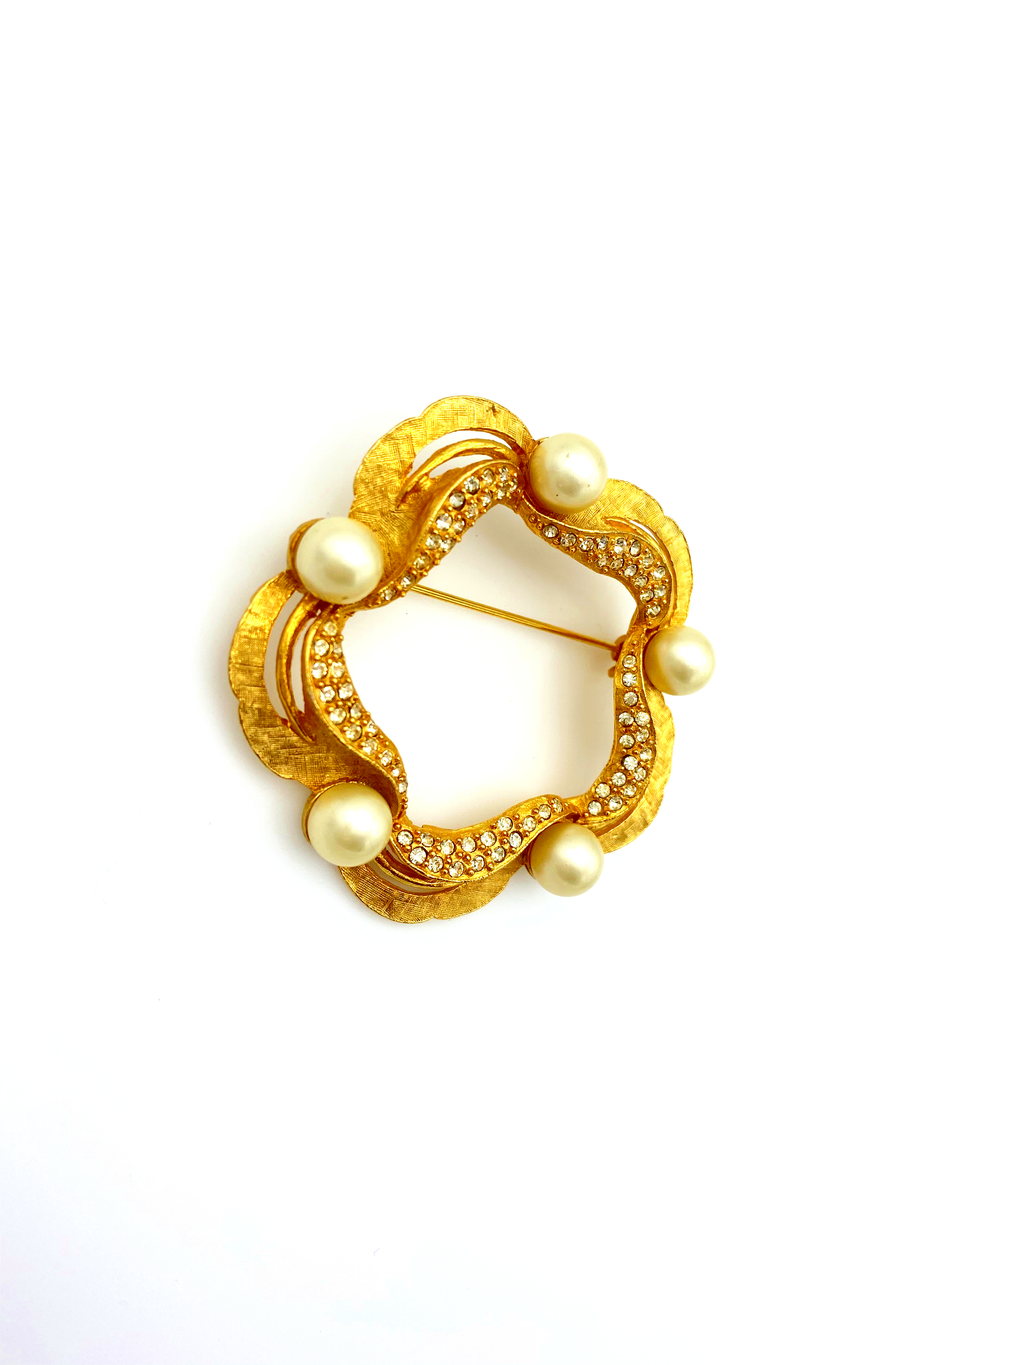 Classic Gold Rhinestone & Pearl Wreath Brooch by Karu Arke-Sustainable Fashion with Vintage Style-Trending Designer Fashion-24 Wishes